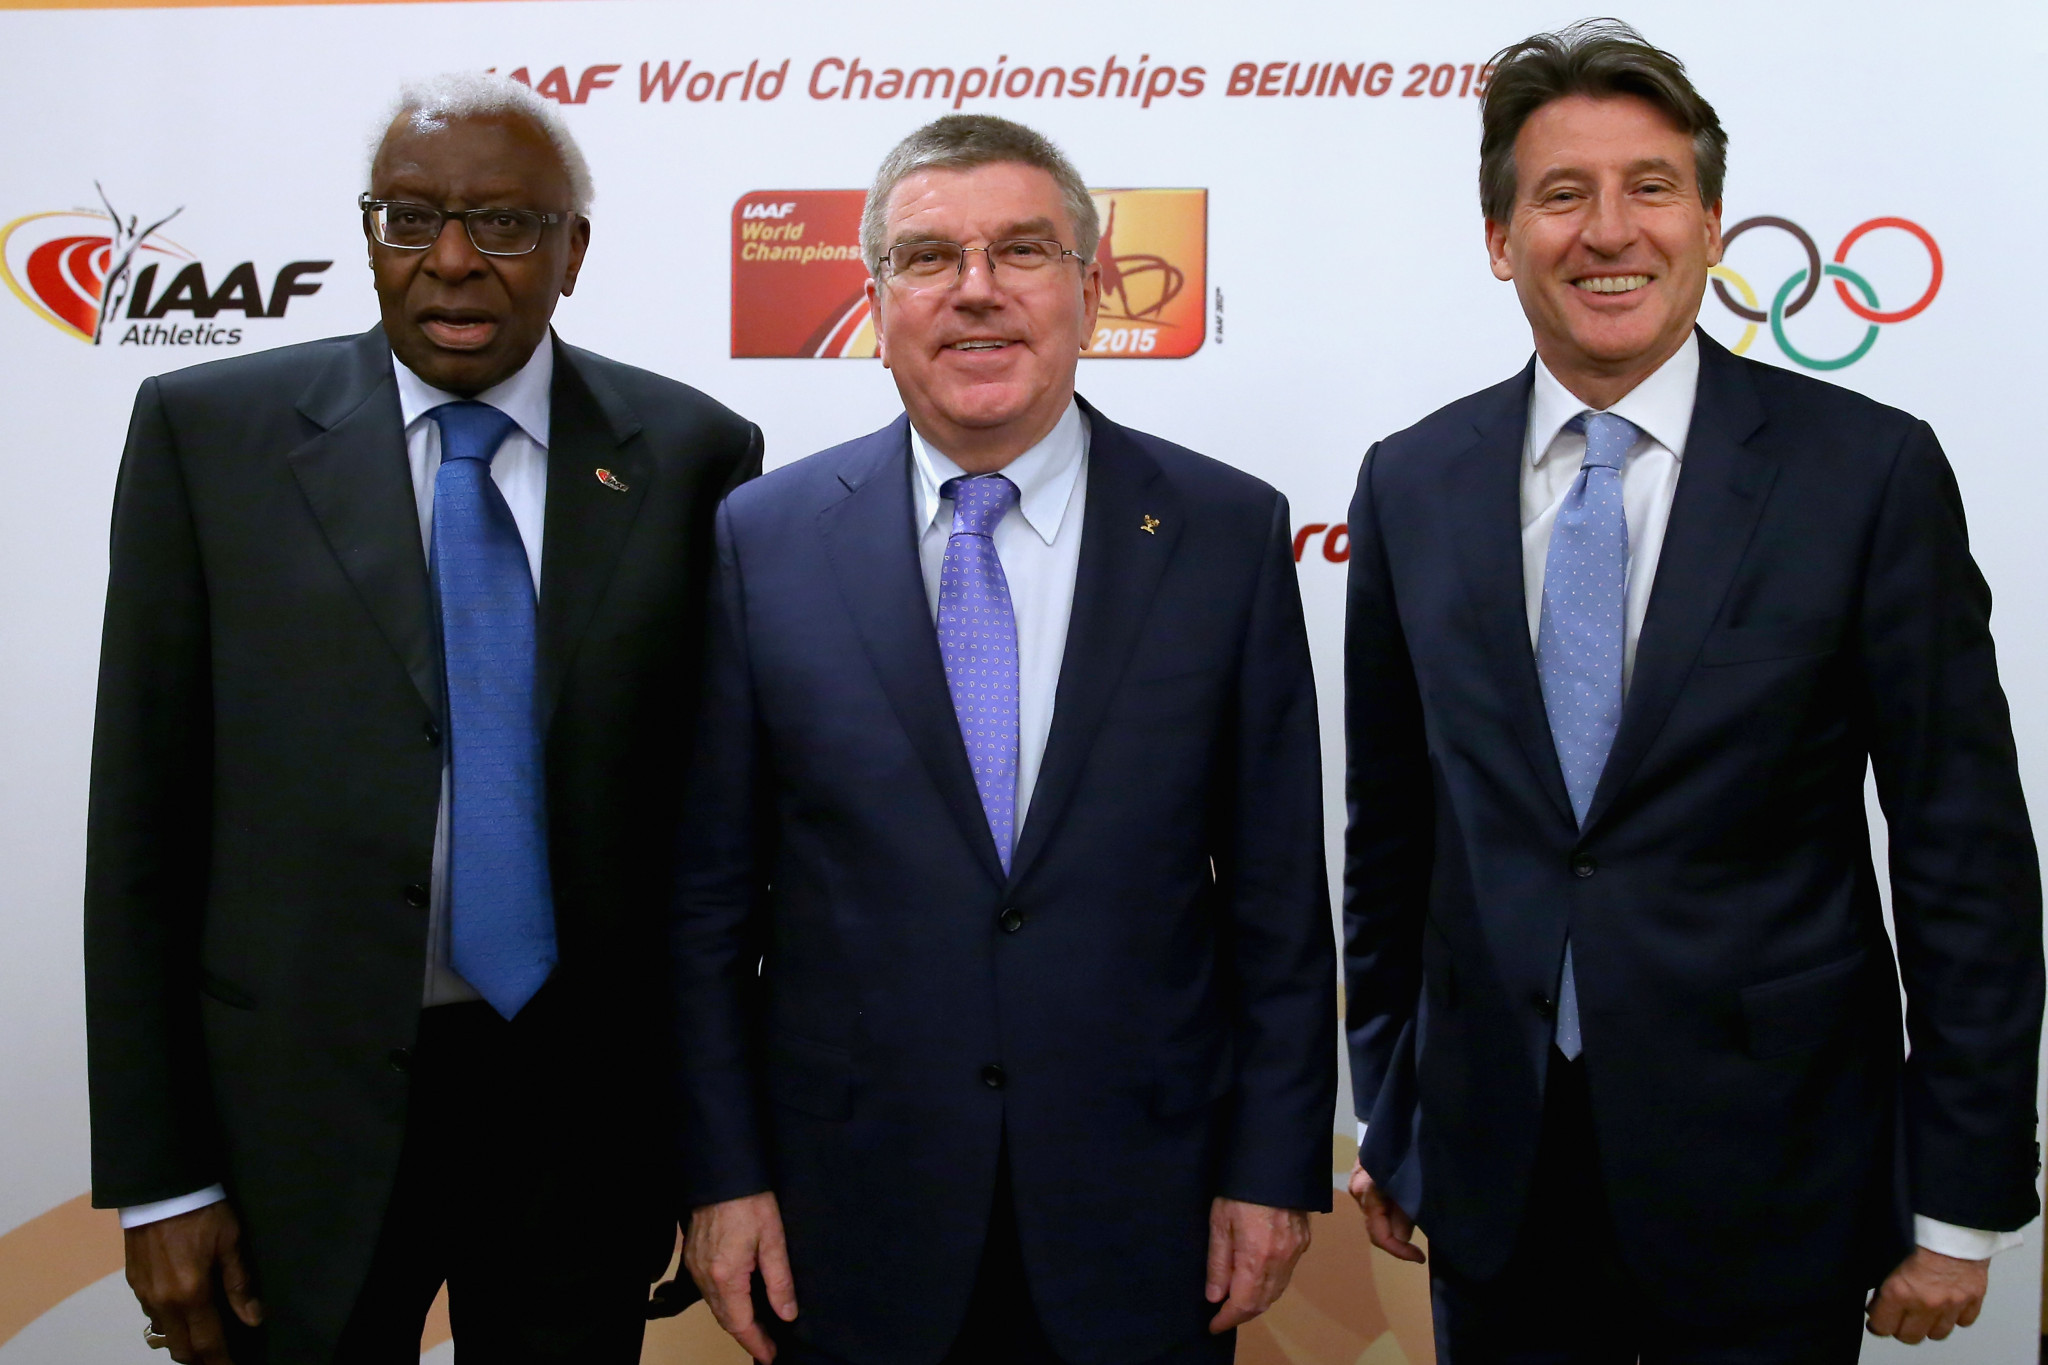 Lamine Diack, left, and Sebastian Coe, right, either side of IOC President Thomas Bach in 2015 ©Getty Images